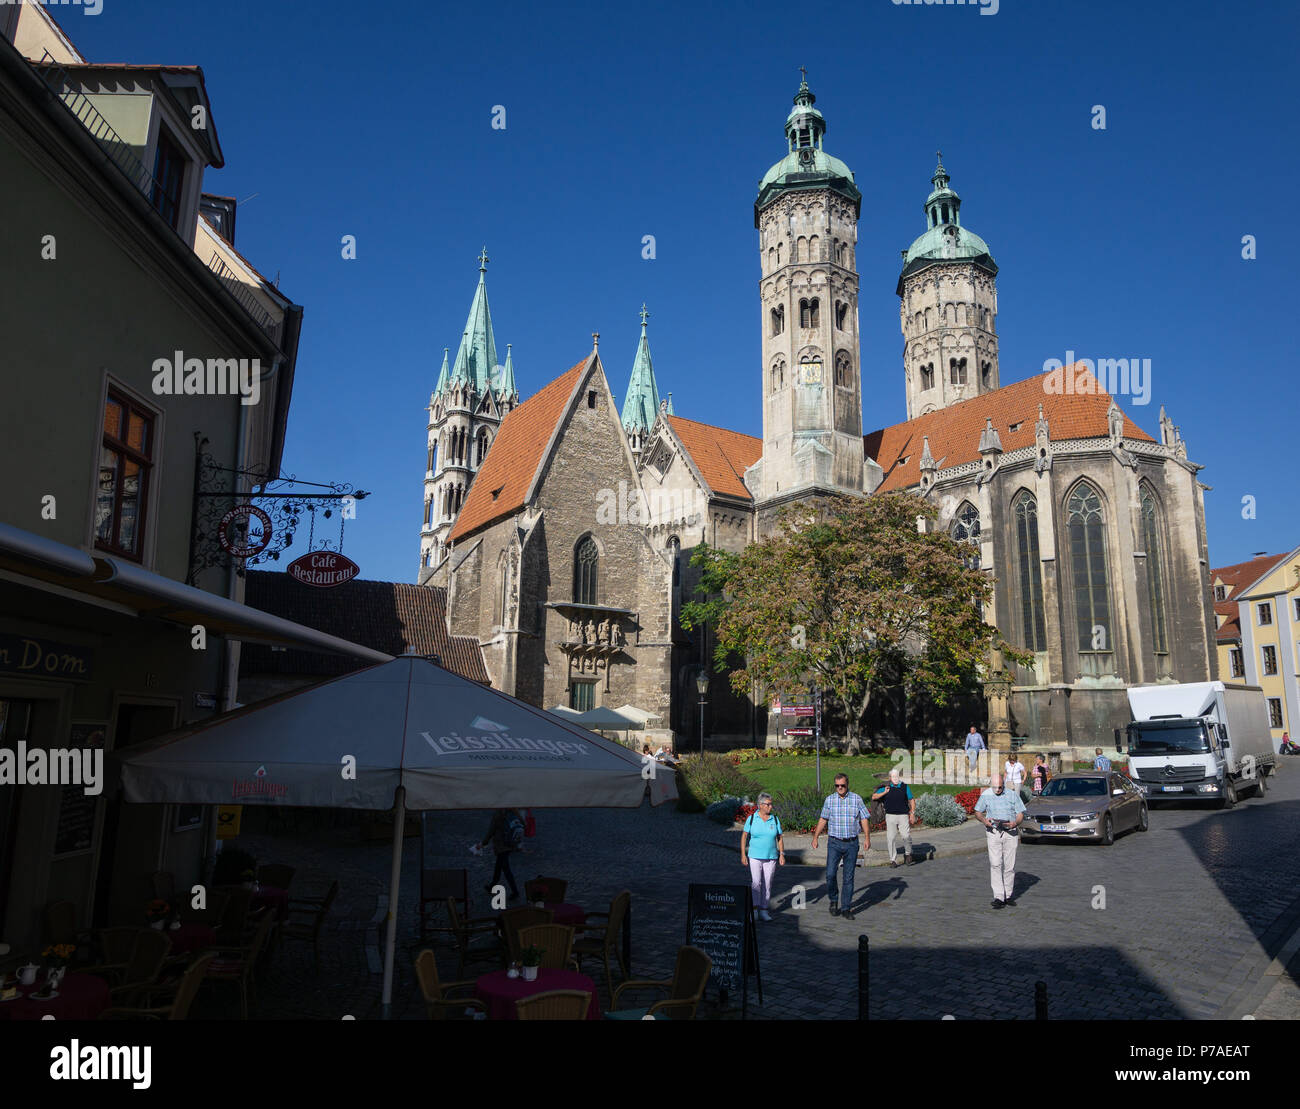 16 October 2017, Naumburg/Saale, Germany: The Naumburg Cathedral. The building in Saxony-Anhalt was declared a UNESCO World Heritage Site on 01.07.2018. The Naumburg Cathedral St. Peter and Paul was created in the 13th century and is counted among the most important cathedral buildings of the European high Middle Ages. Photo: Frank Rumpenhorst/dpa - Stock Image